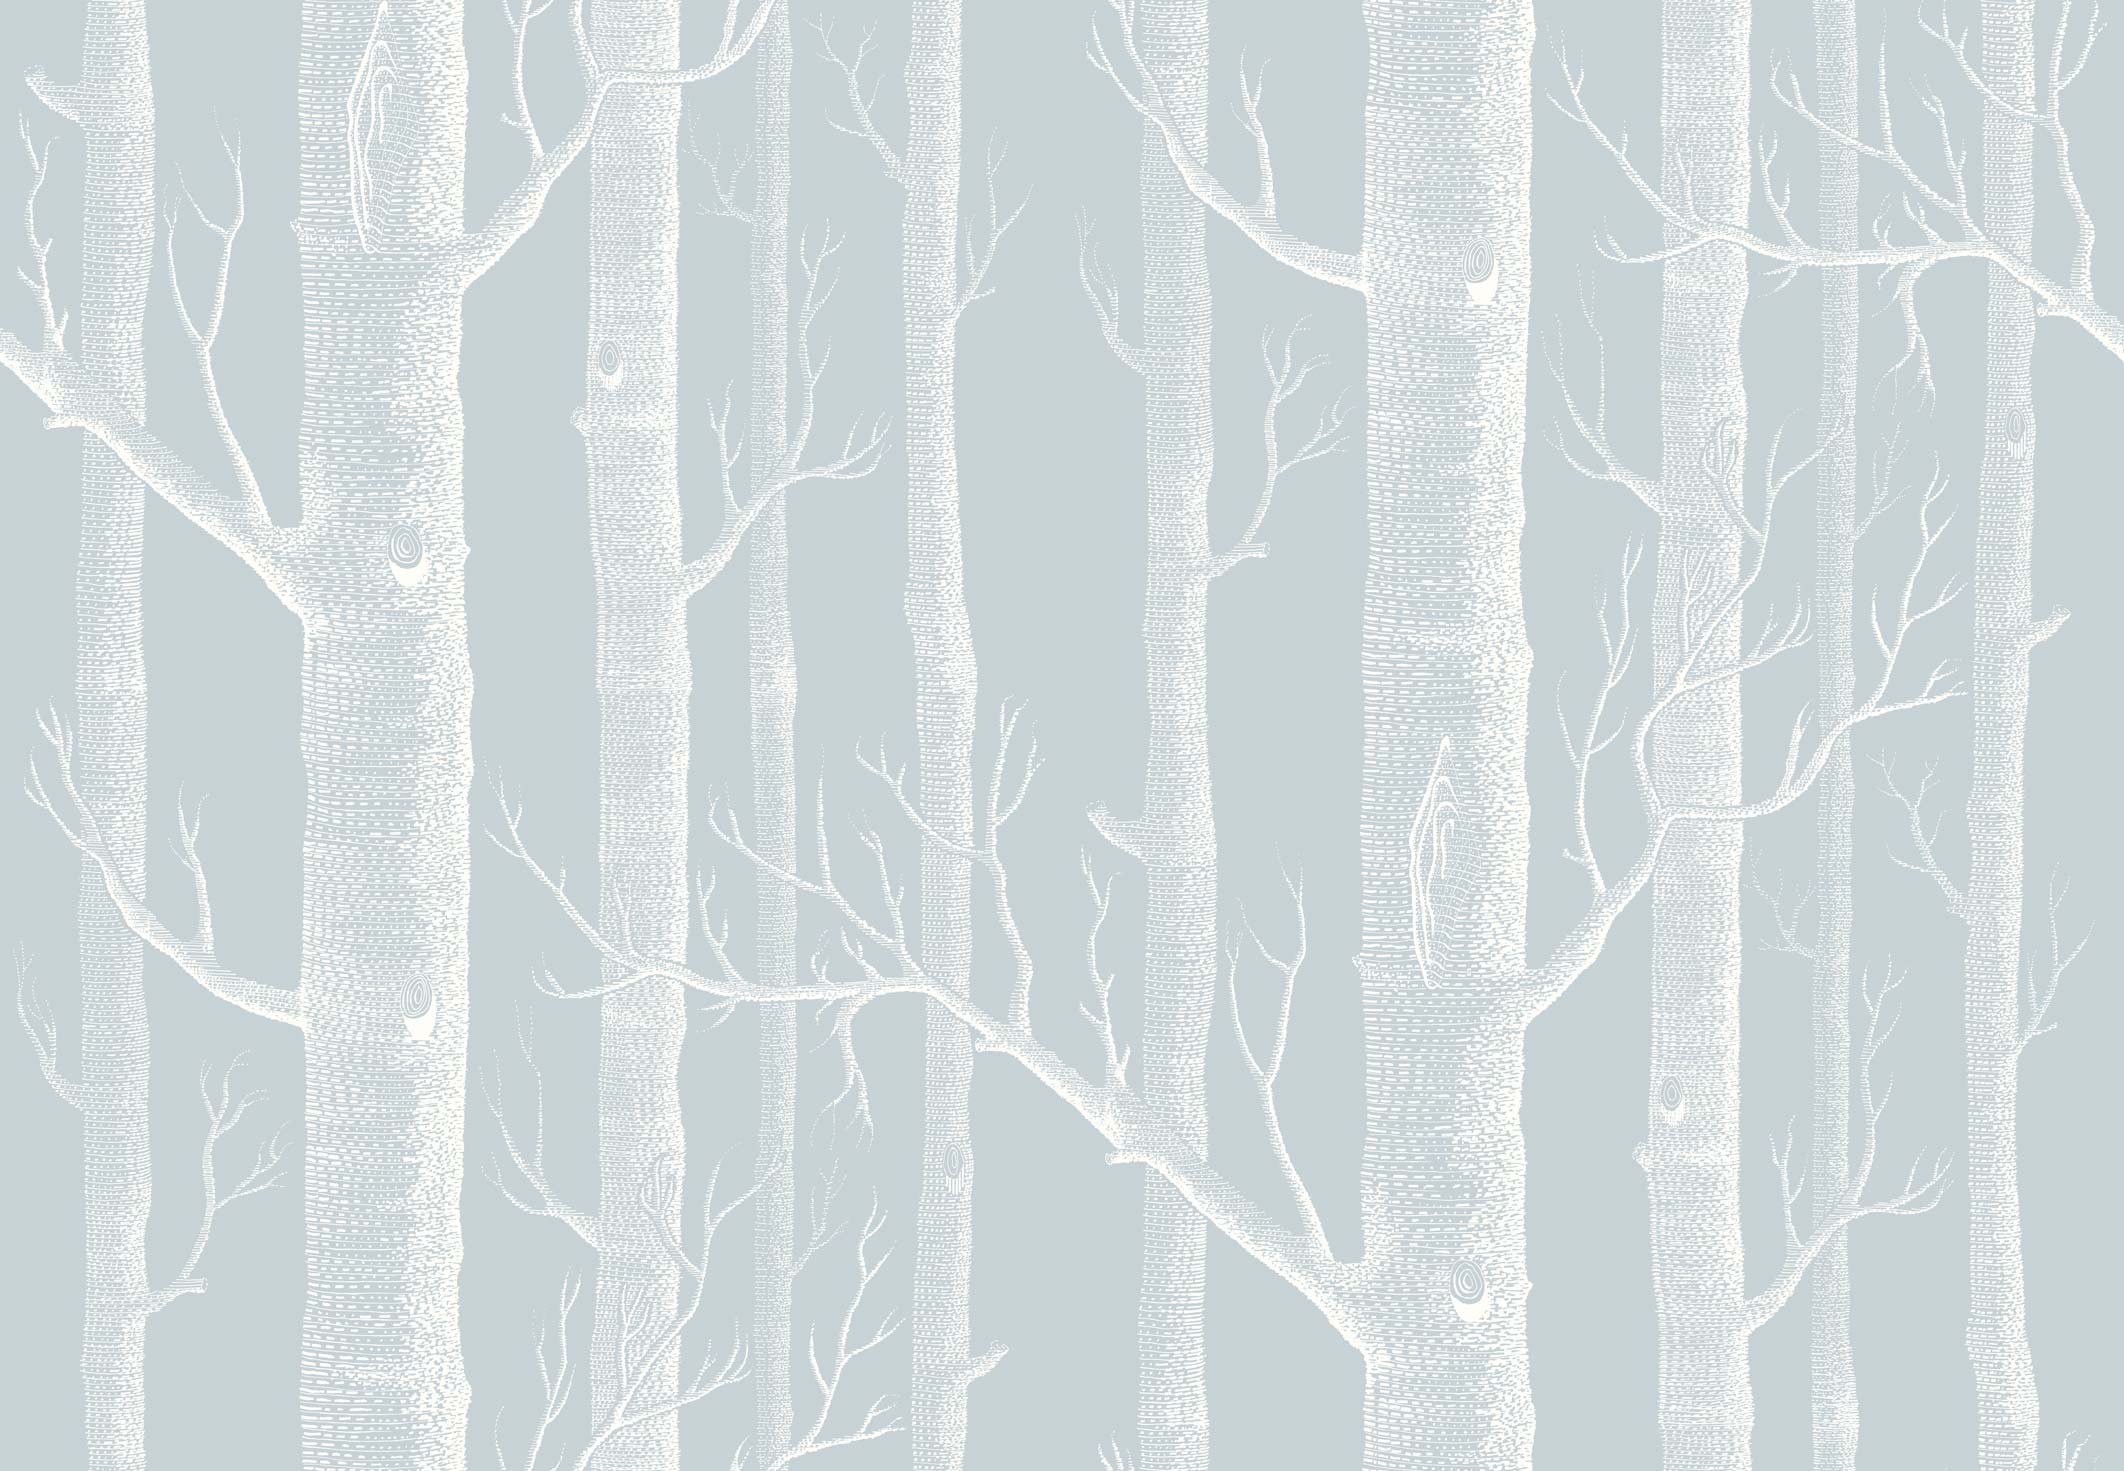 Woods 1035022   Whimsical   Cole Son 2124x1471